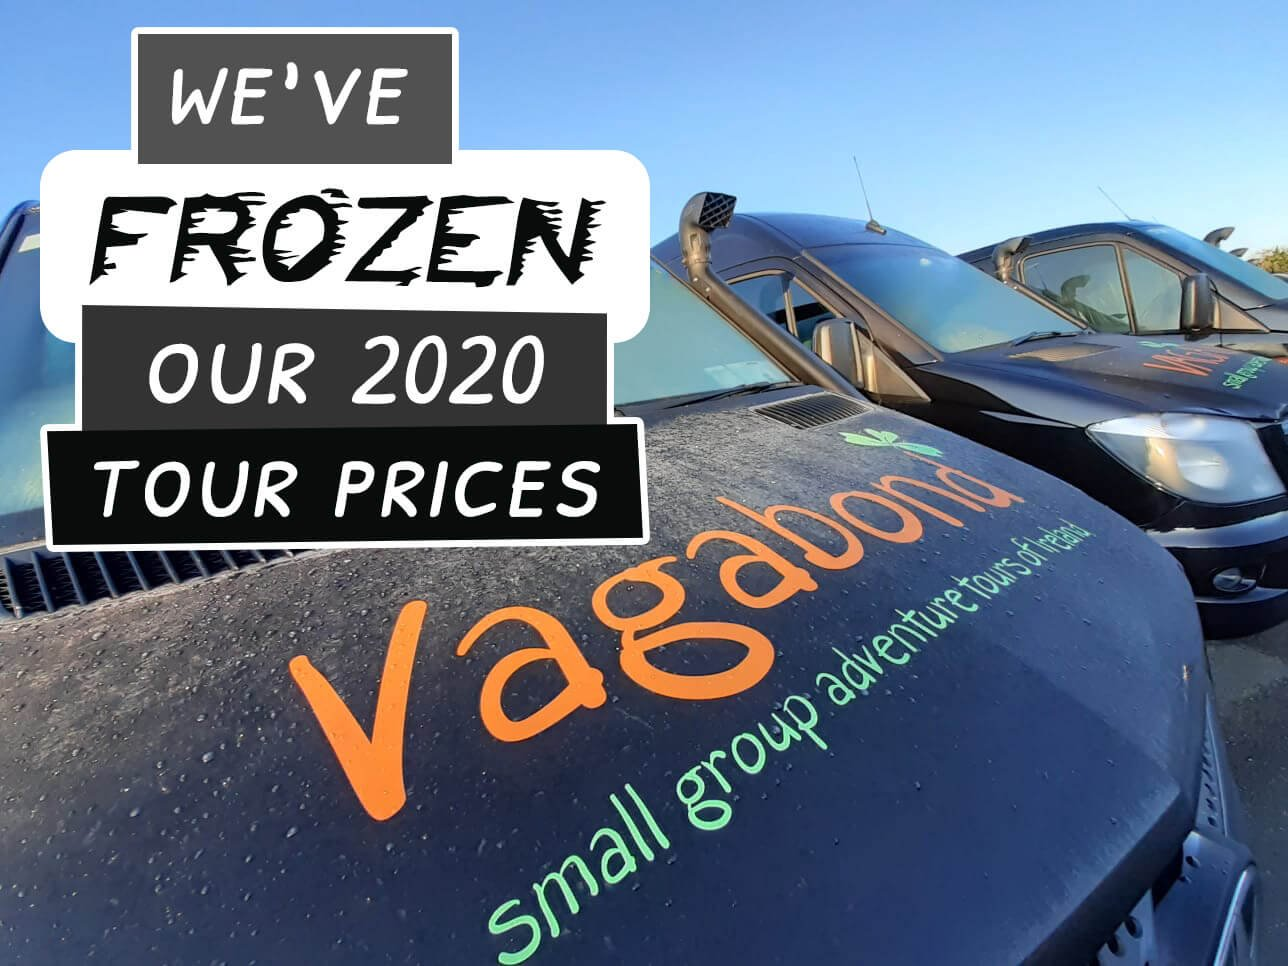 We've frozen our Tour Prices for 2020 with VagaTron Tour Vehicle